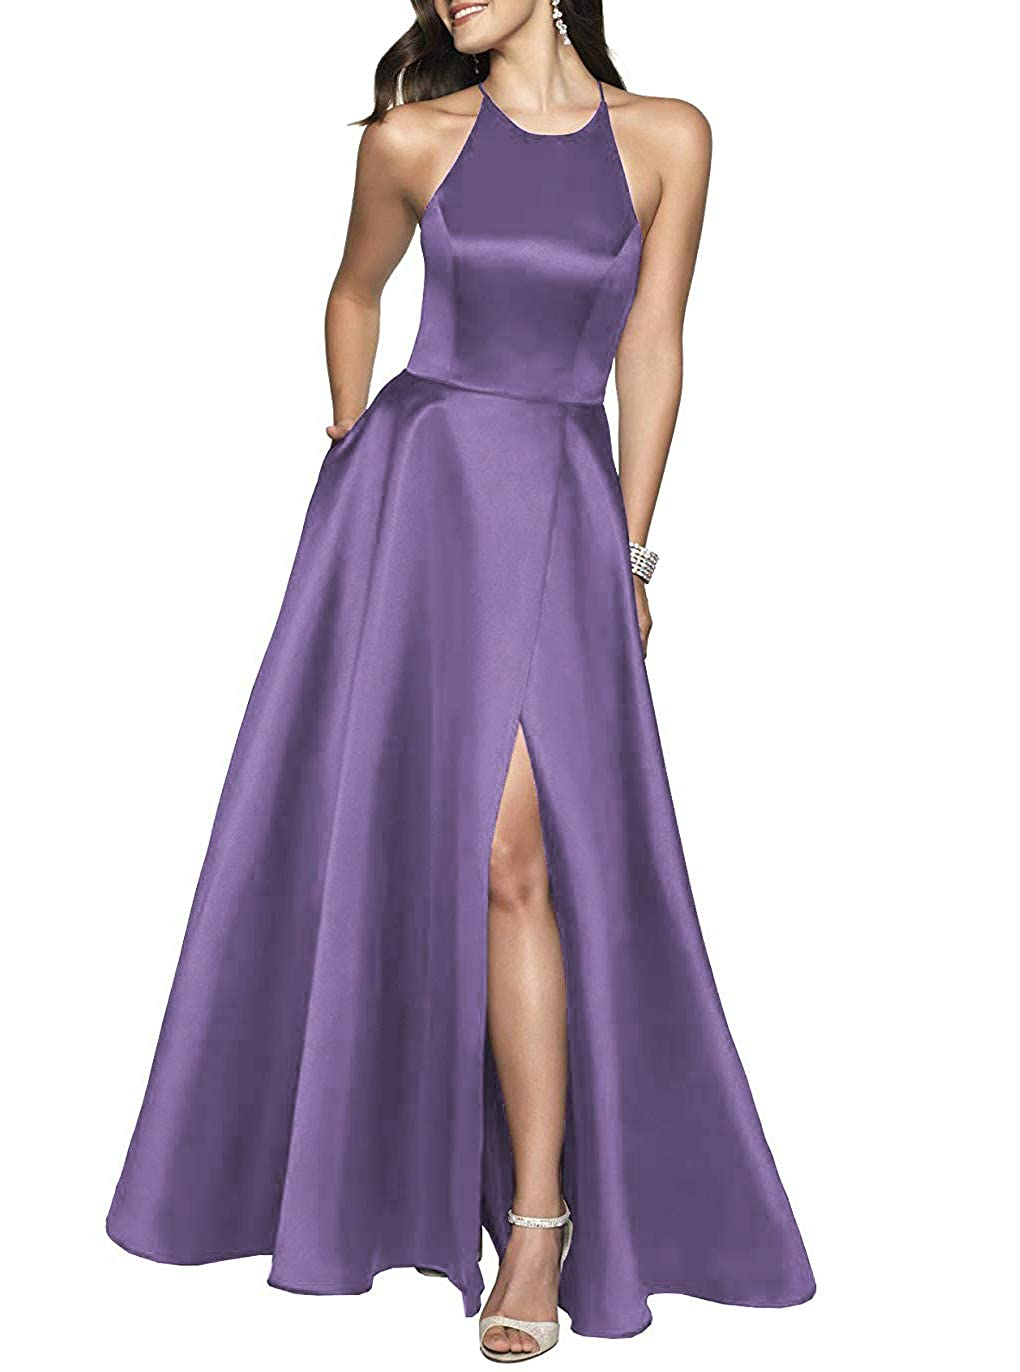 Chalk purple YUSHENGSM Women's High Neck Satin Long Prom Dresses for Women Formal Evening Party Gowns